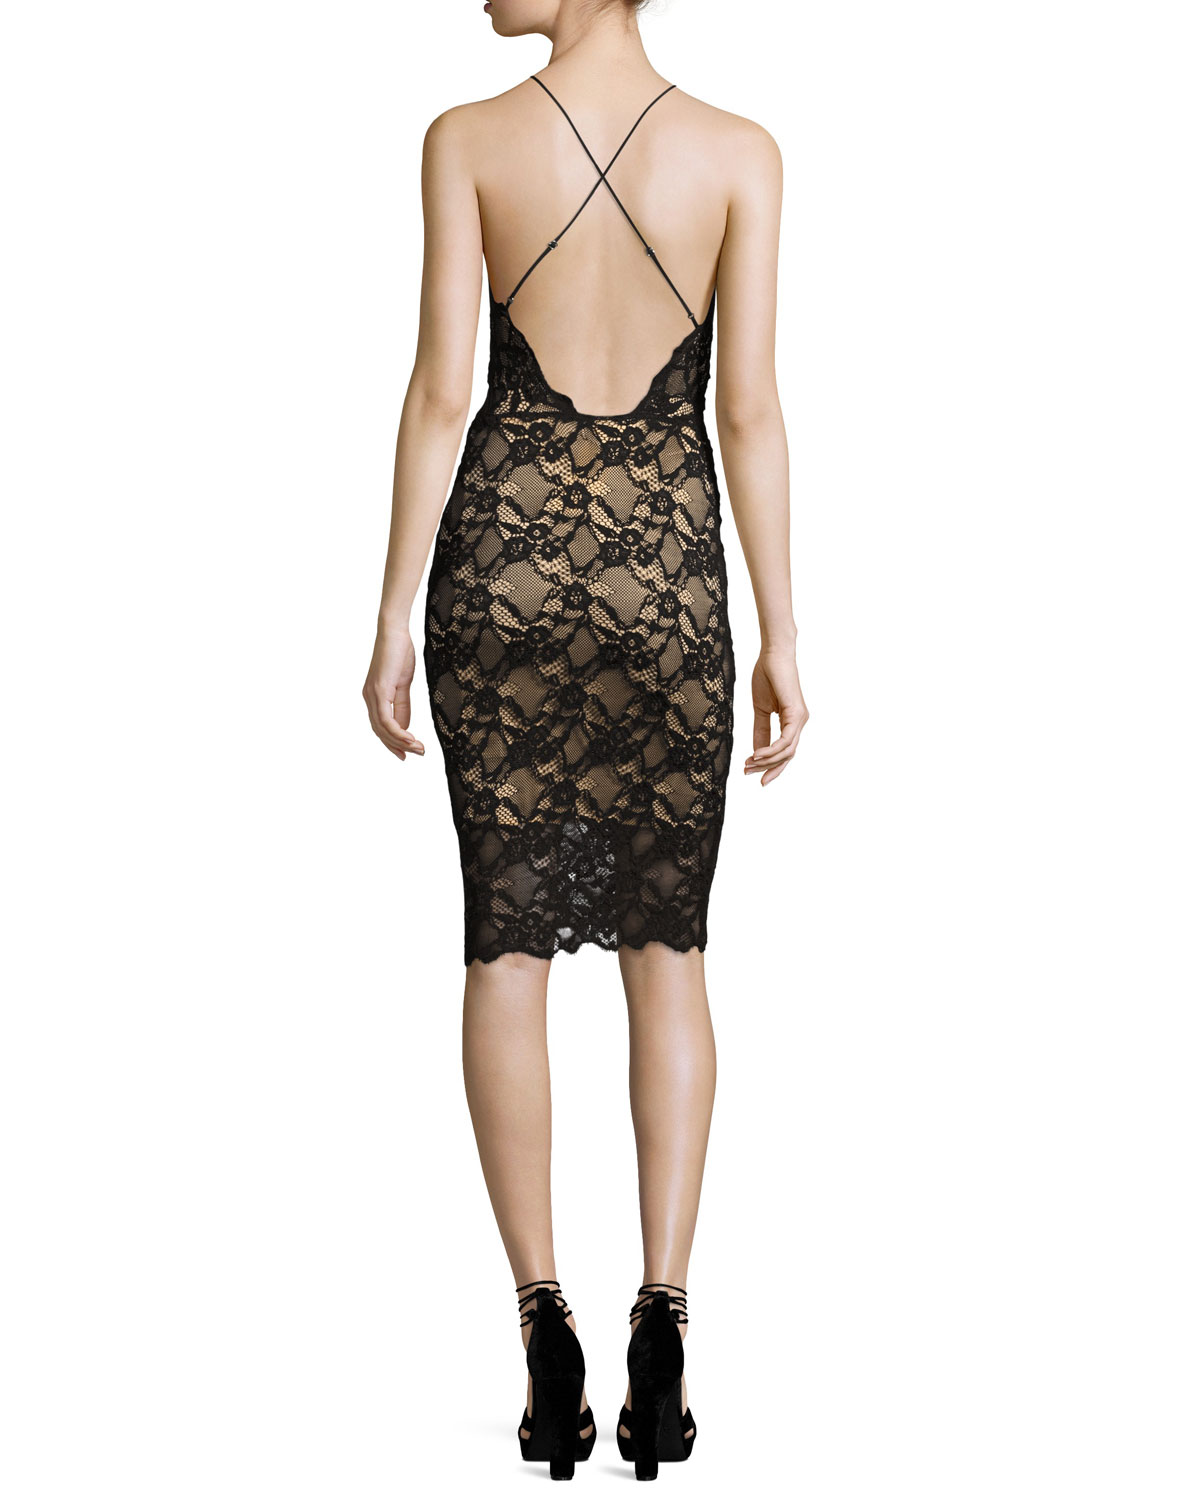 Drive Me Home Lace Cocktail Dress, Black